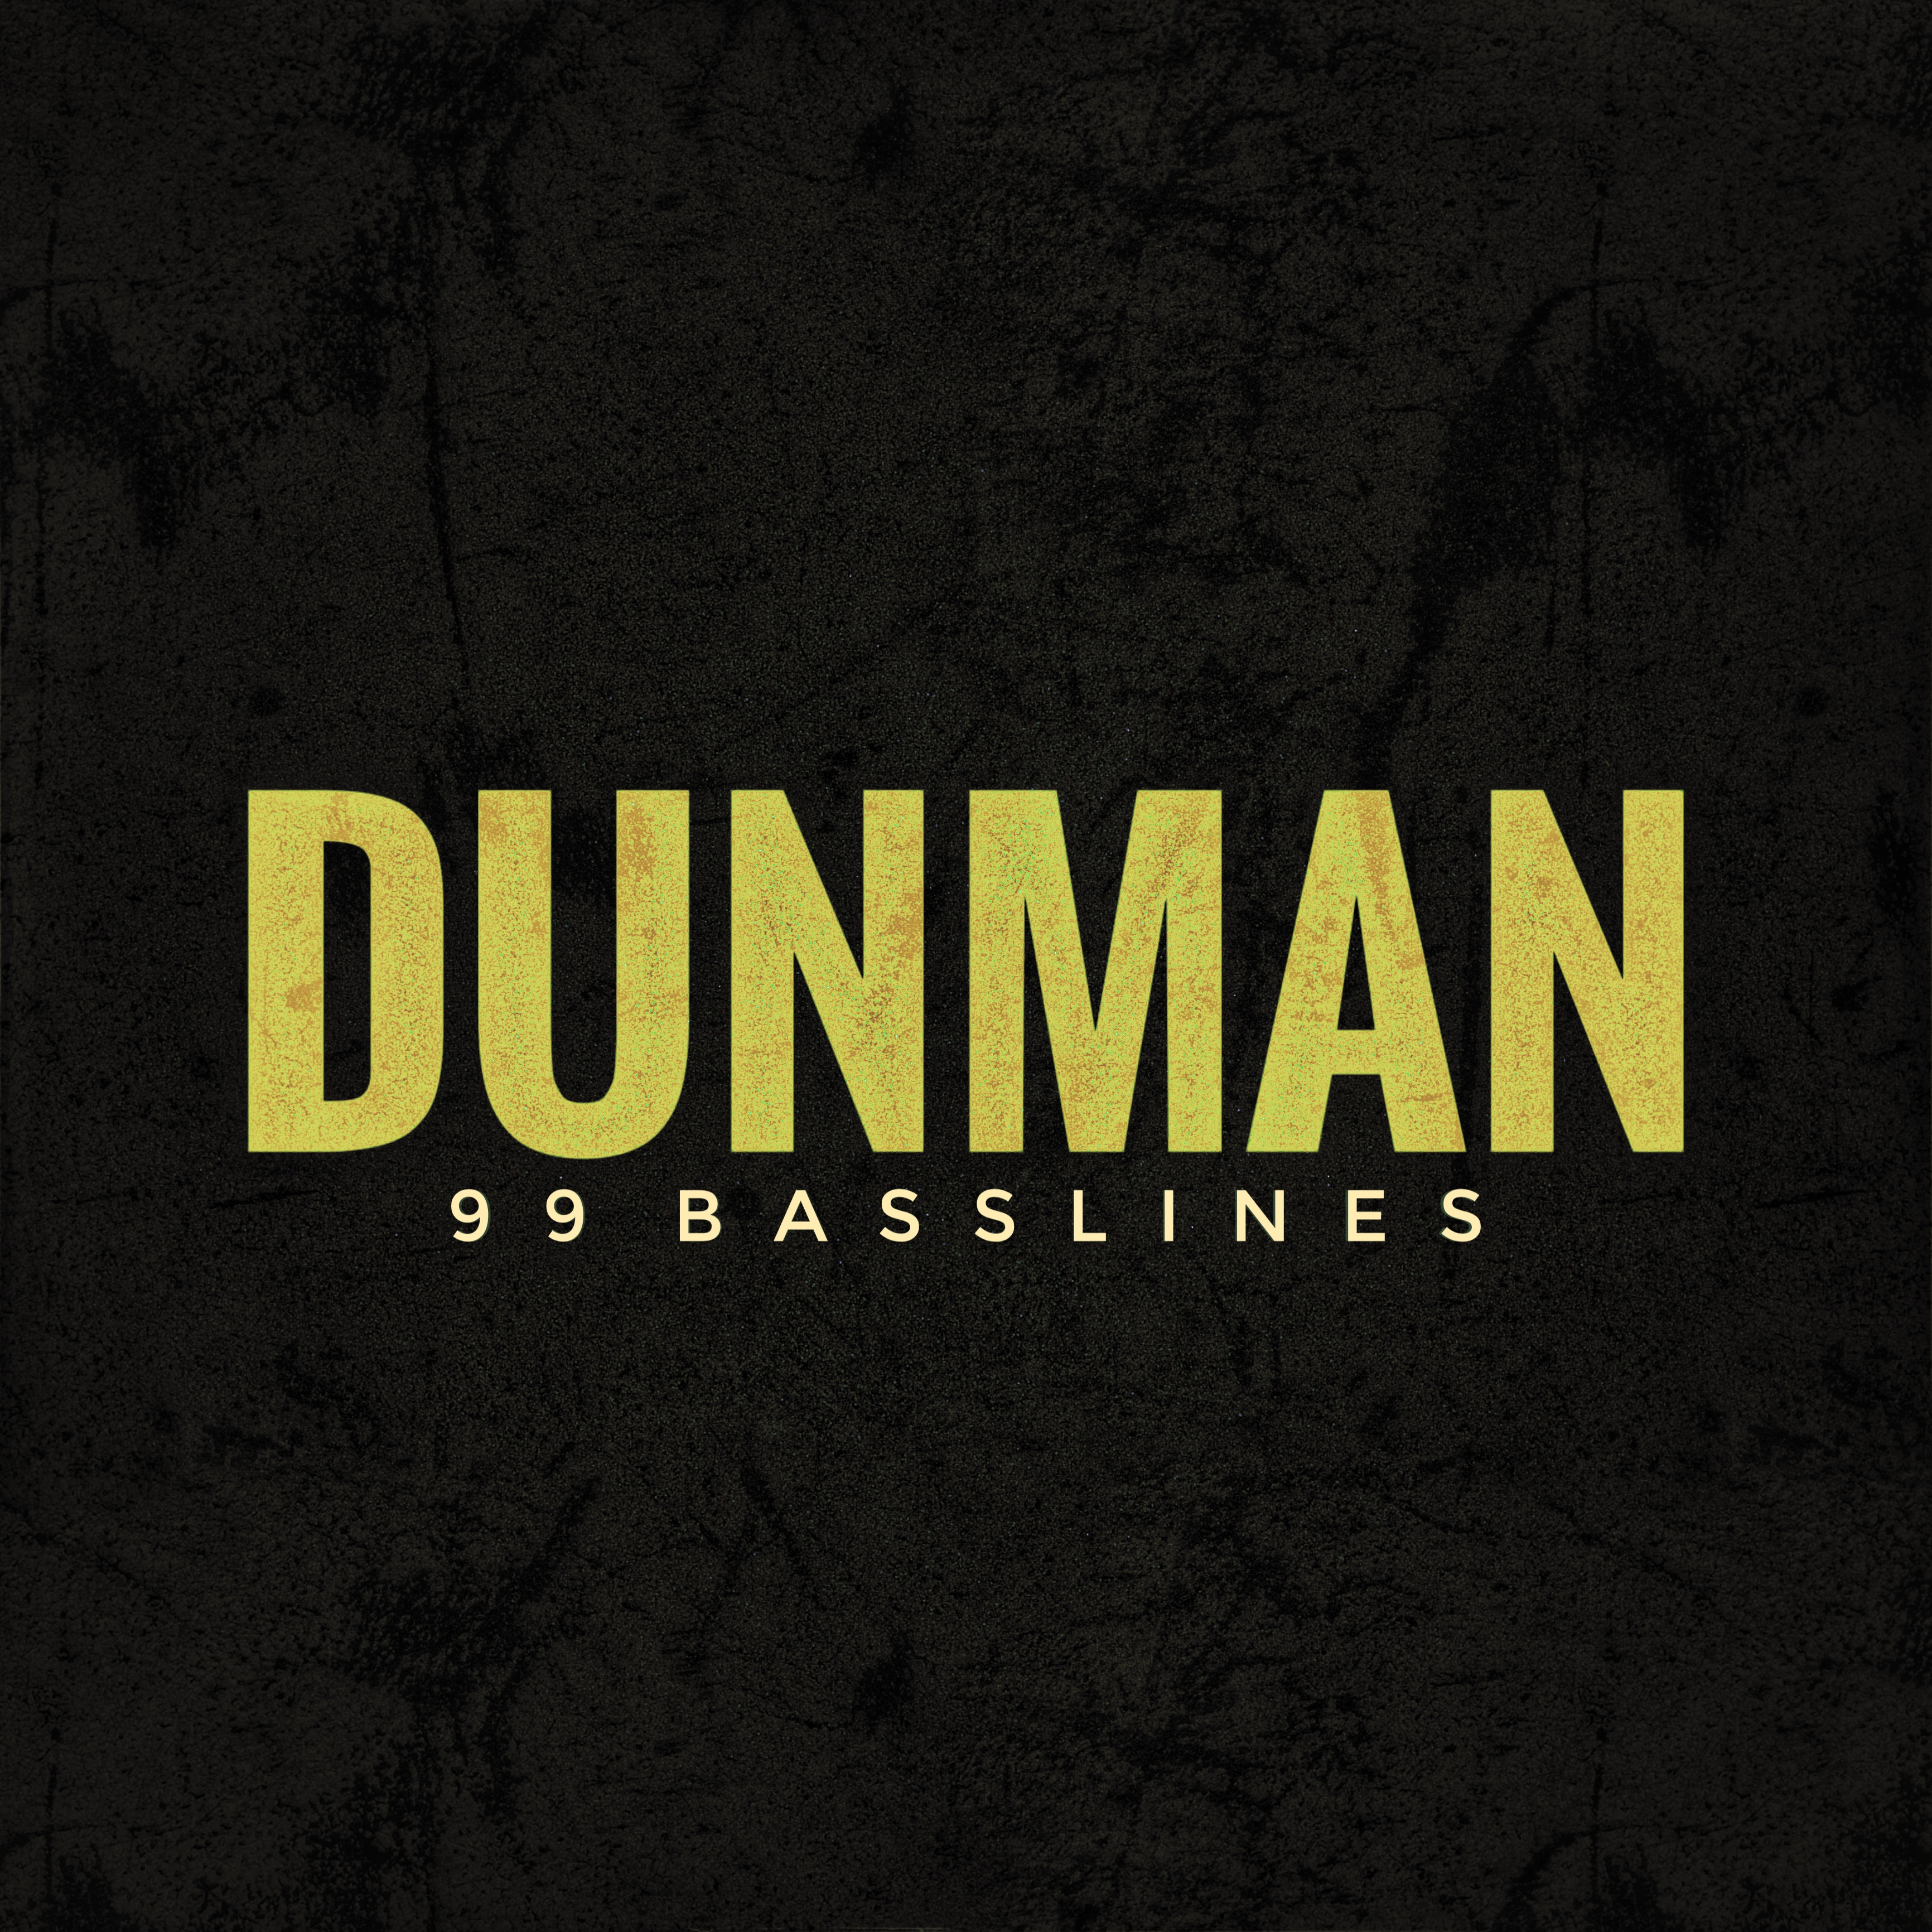 Dunman 99 Basslines Artwork